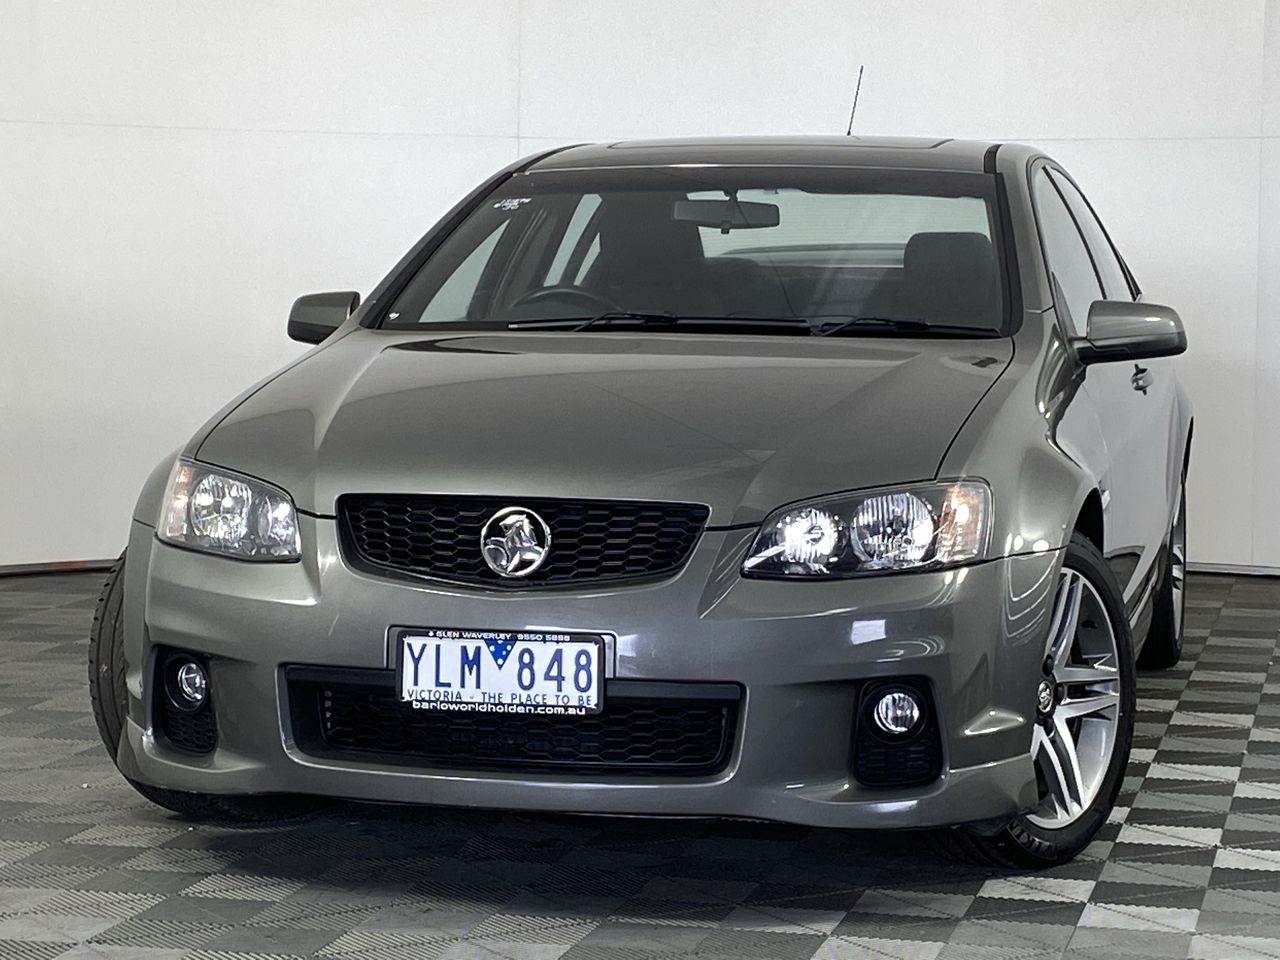 2011 Holden Commodore SV6 VE Automatic Sedan